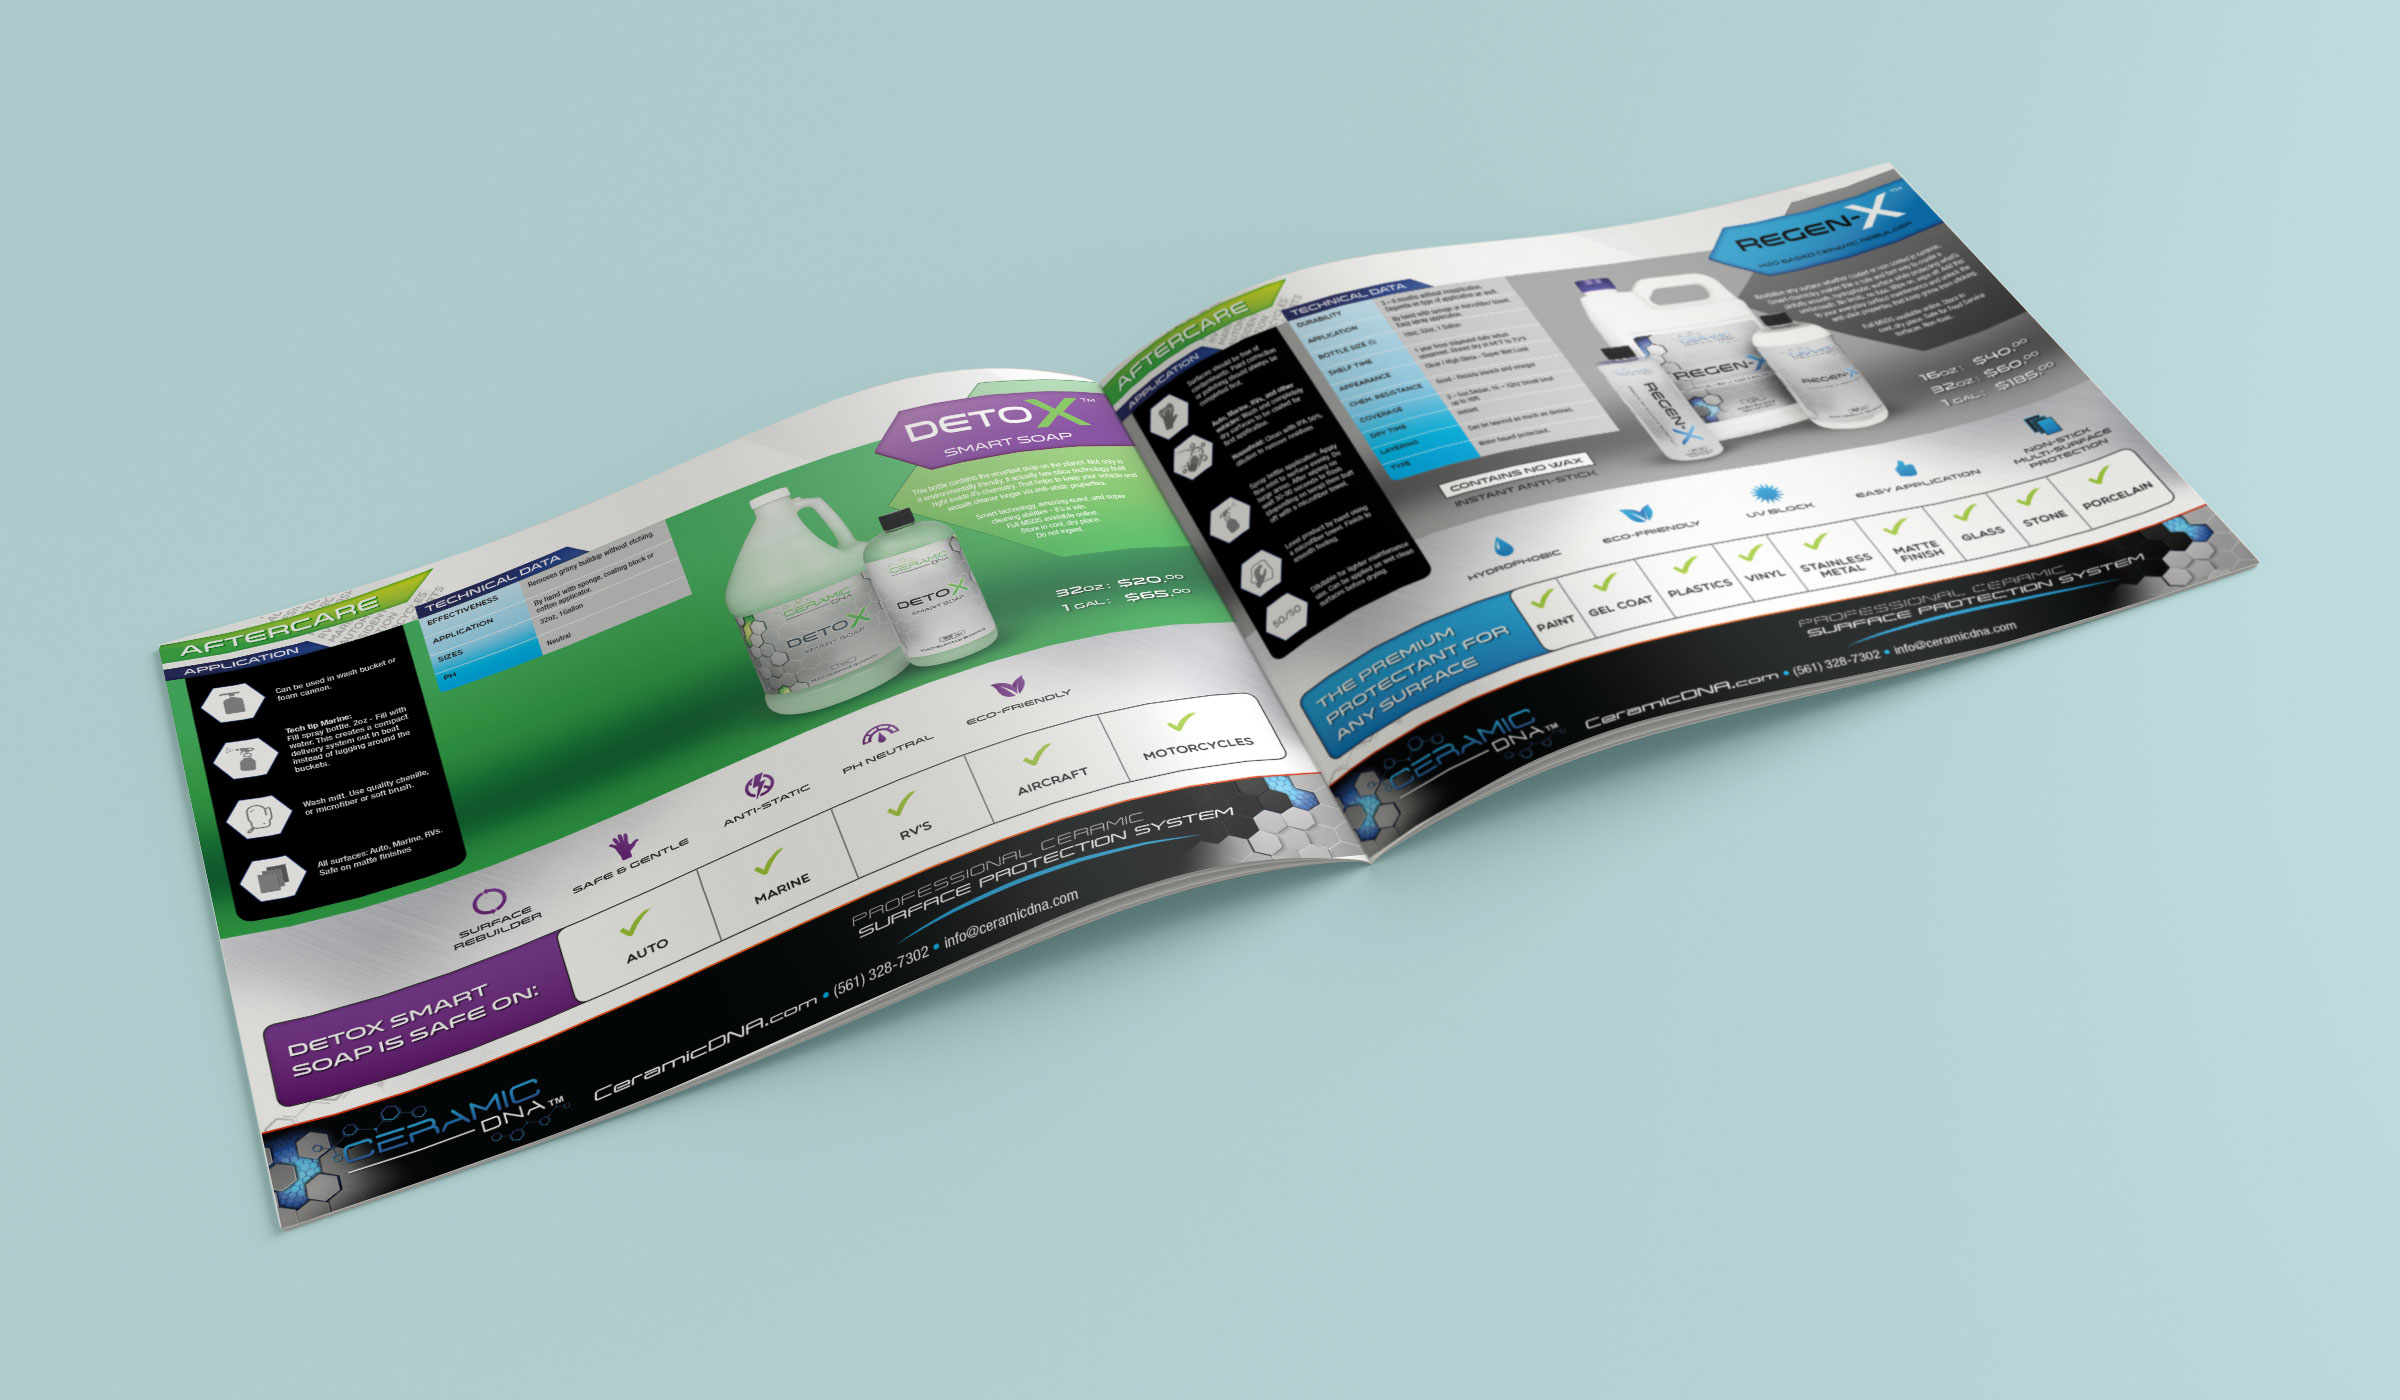 Ceramic DNA produc catalog - design by Projekt Group Marketing and Creative